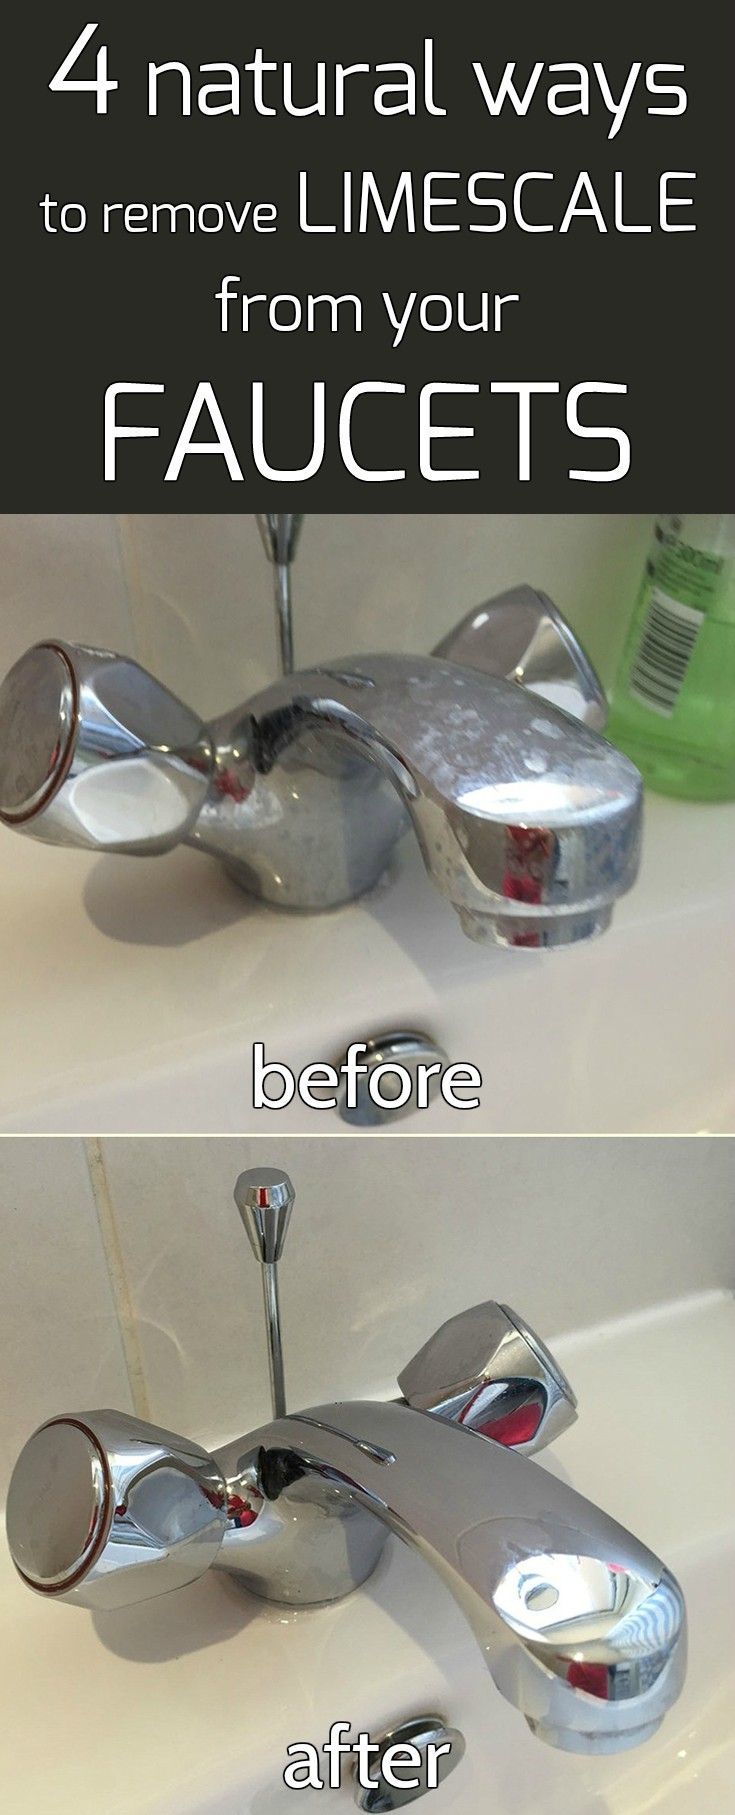 4 natural ways to remove limescale from your faucets - CleaningTutorials.net…